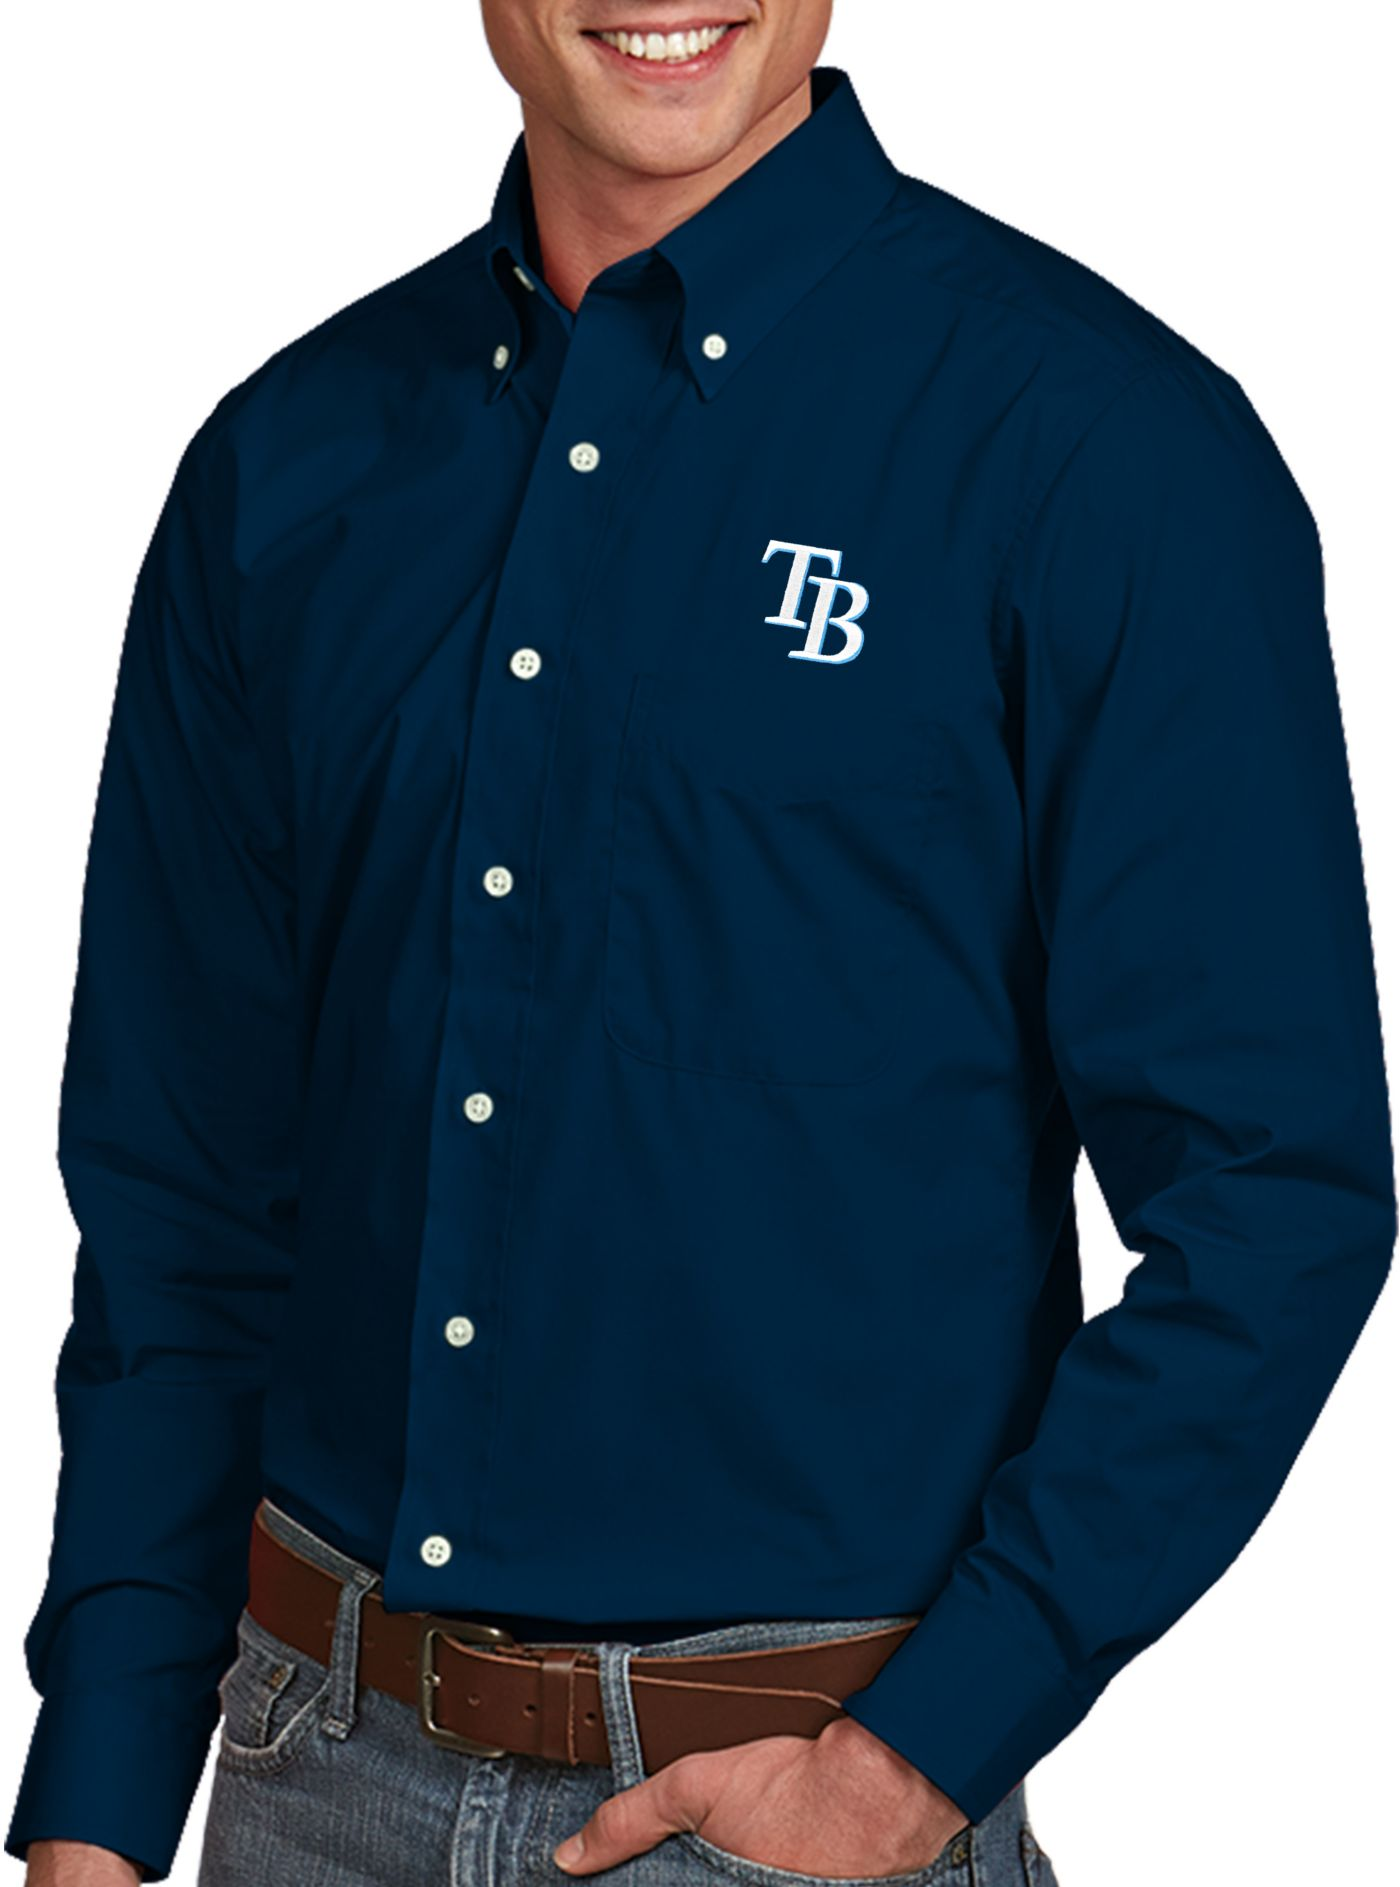 Antigua Men's Tampa Bay Rays Dynasty Button-Up Navy Long Sleeve Shirt